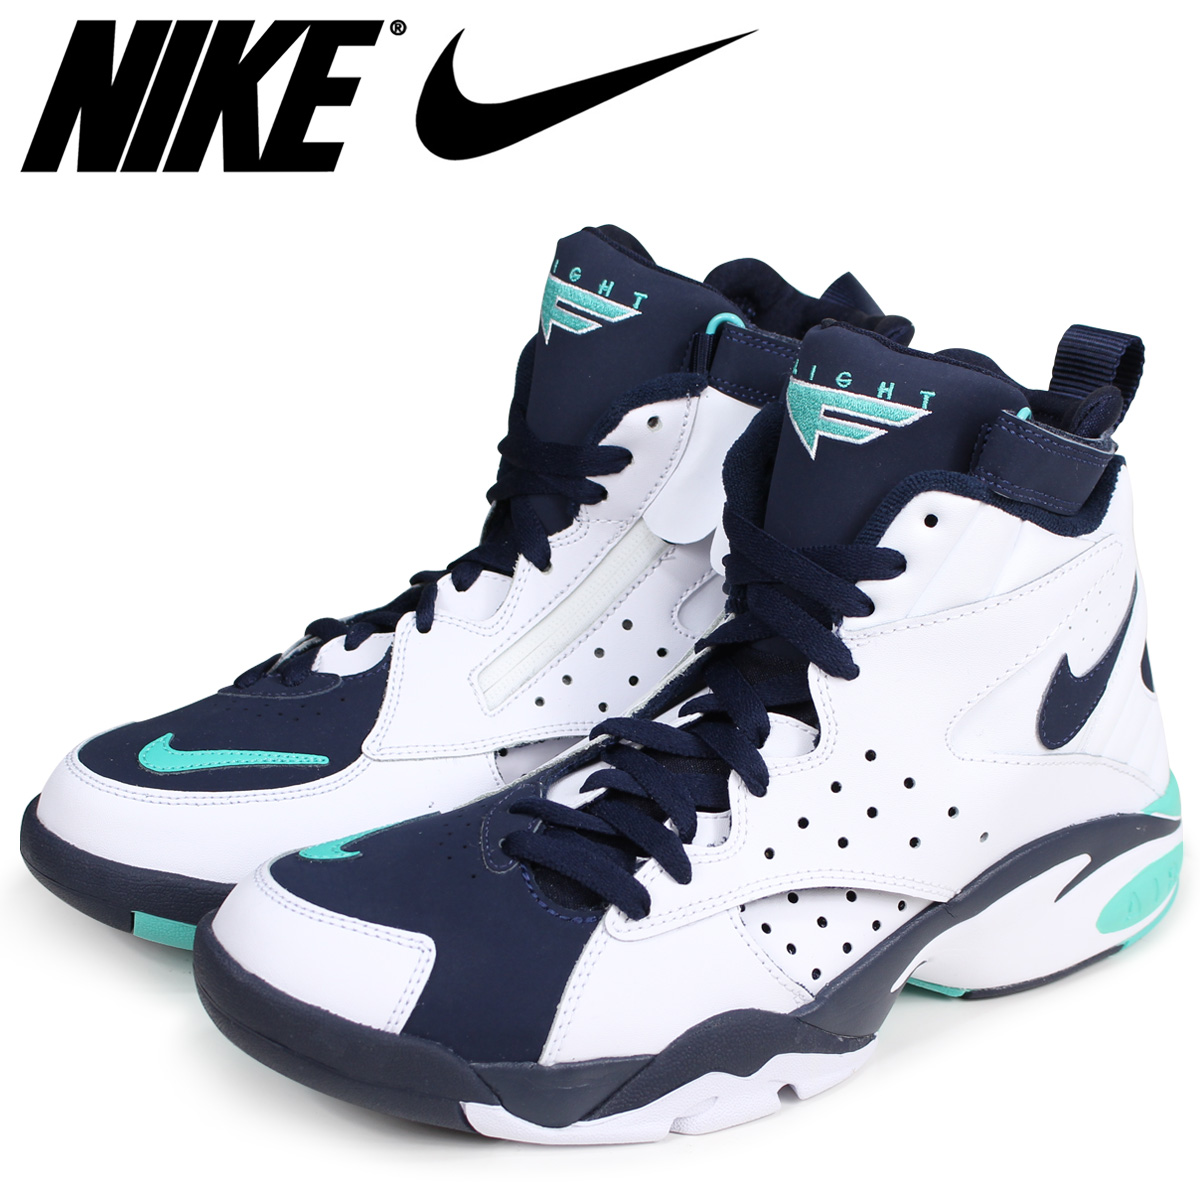 NIKE Nike air maestro 2 sneakers men AIR MAESTRO II LTD AH8511-100 white   load planned Shinnyu load in reservation product 6 9 containing  a14f79168